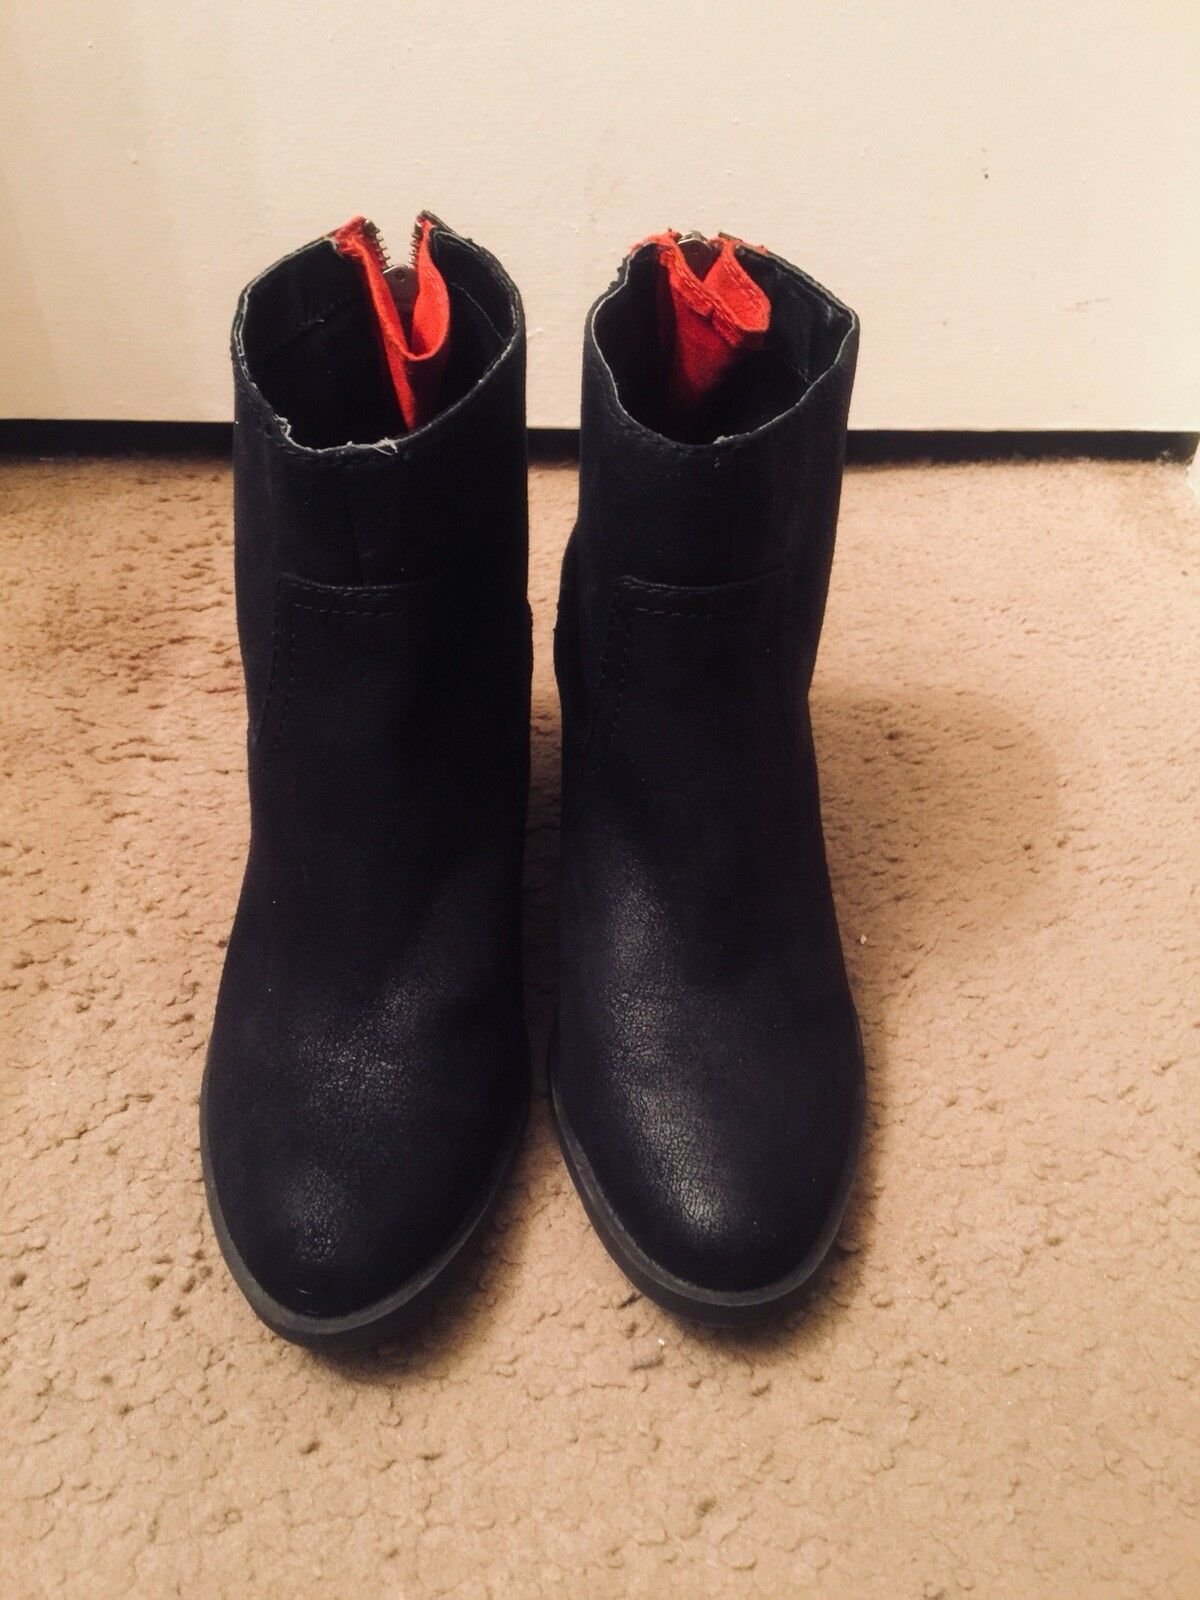 Womens Leather Ankle Boots Size 9.5